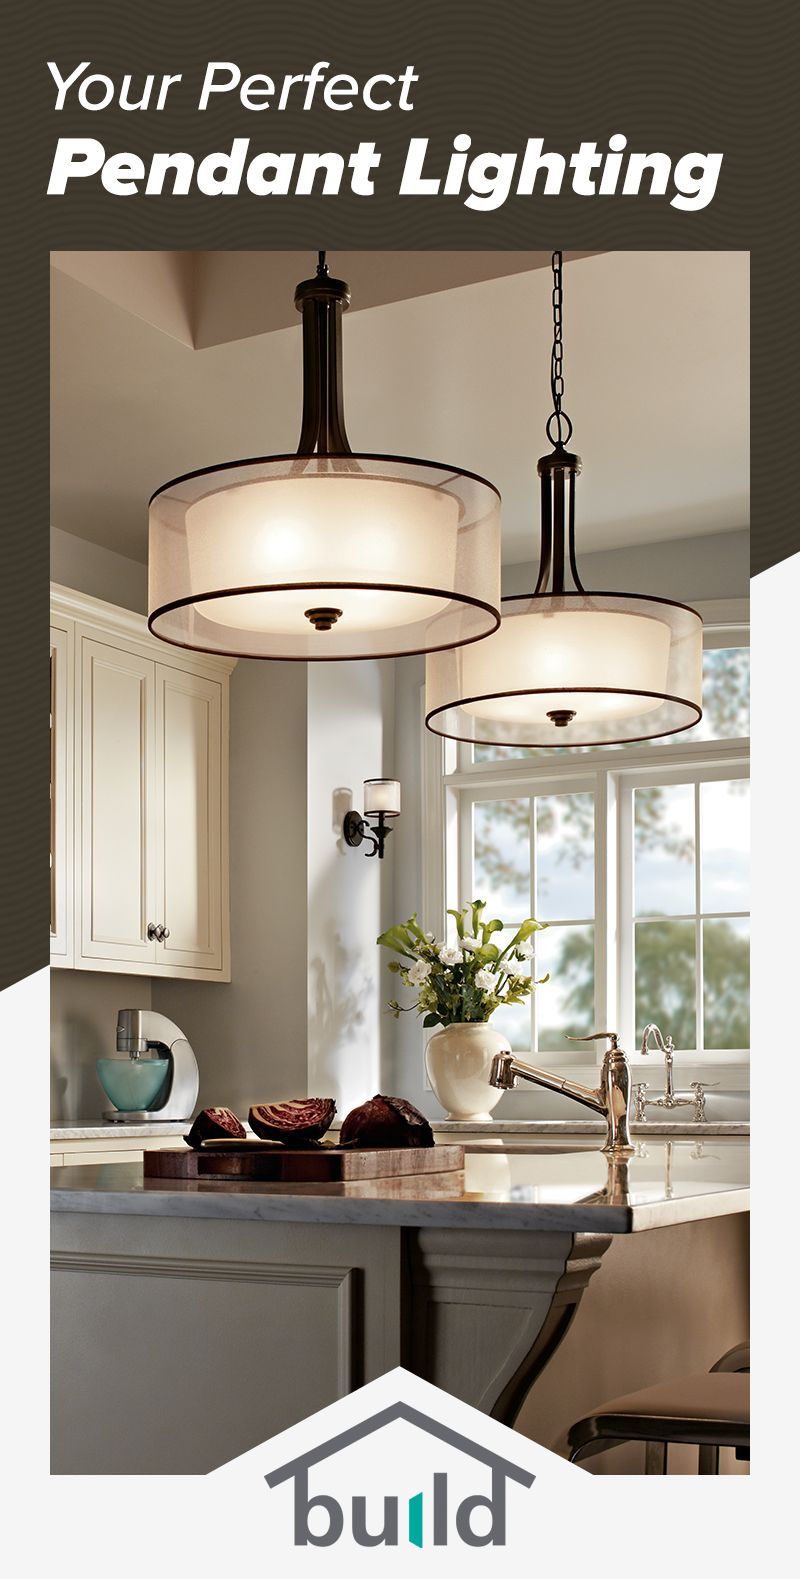 The Best Selection In Home Improvement Is All In One Place Home Home Improvement Home Decor